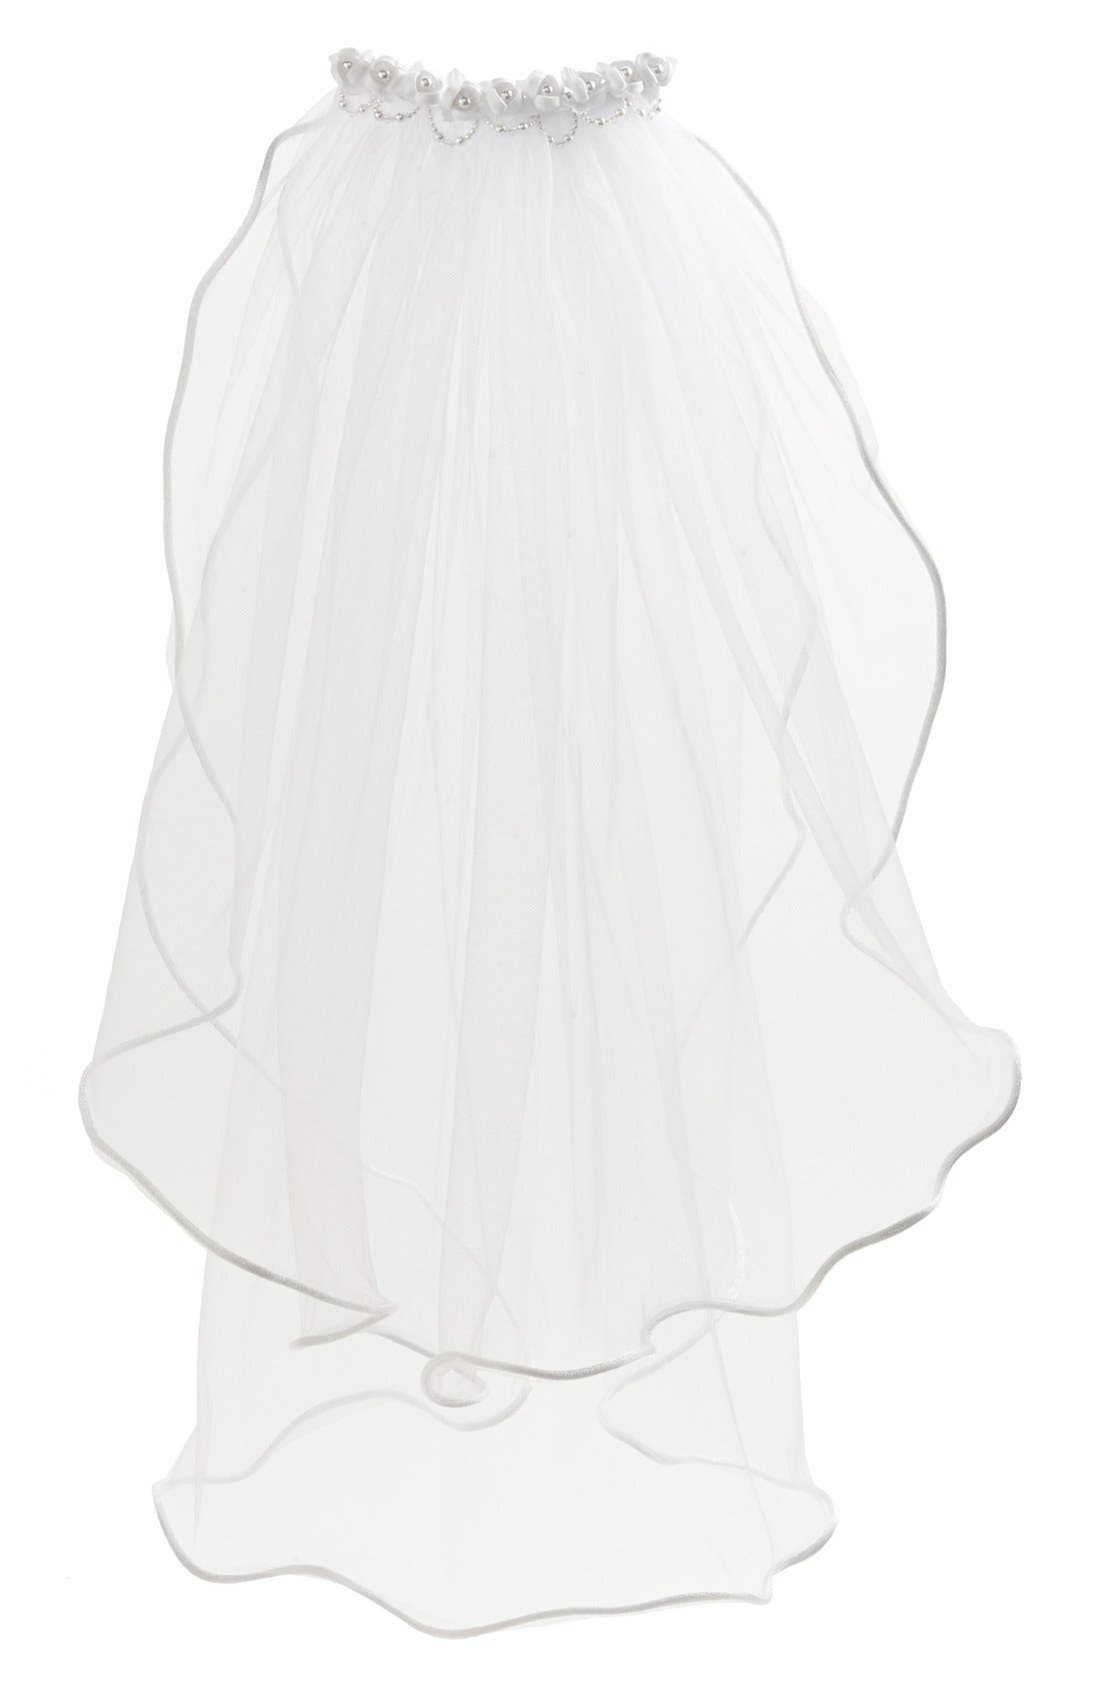 Main Image - Lauren Marie First Communion Veil